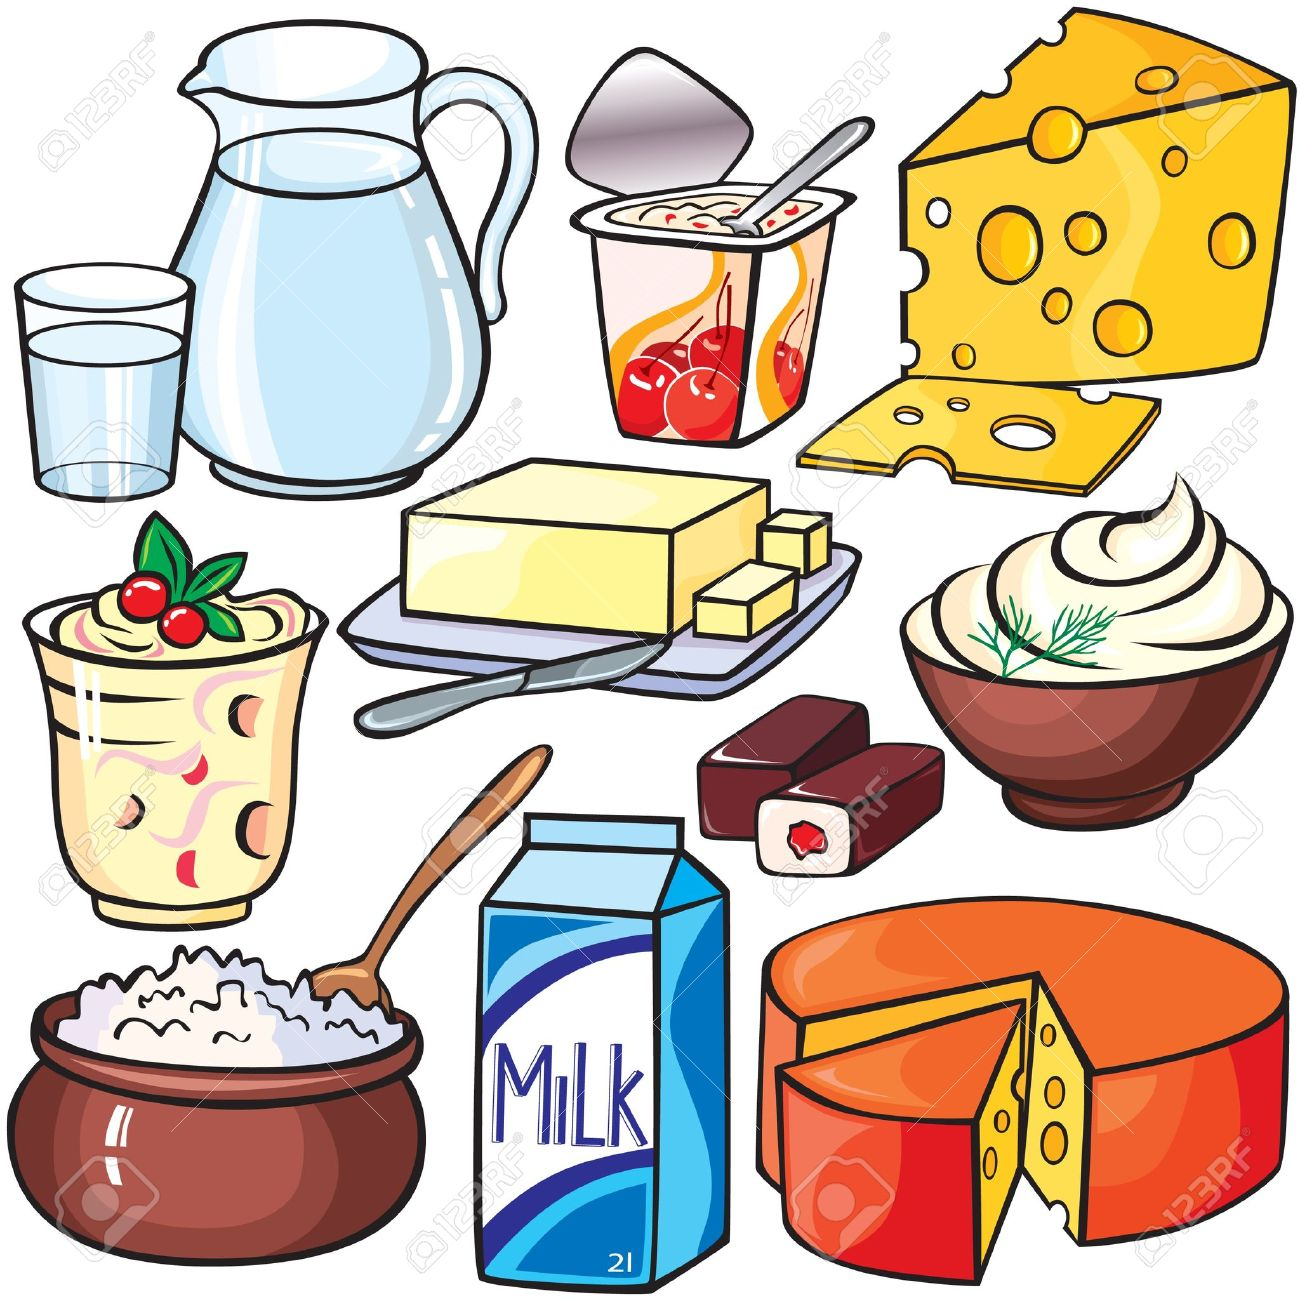 dairy milk clipart clip food yogurt cliparts sour storage icon clipground collection